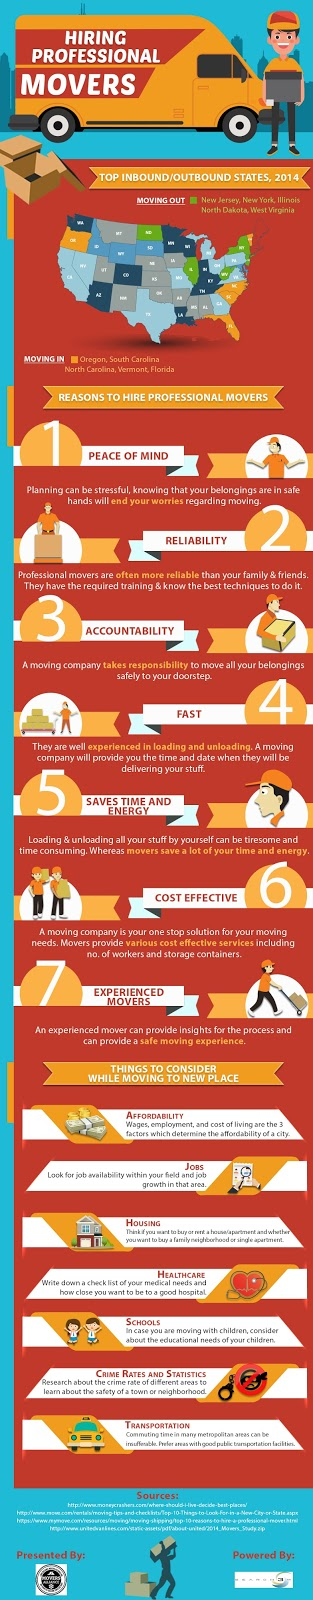 Hiring-Professional-Movers-Infographic.j